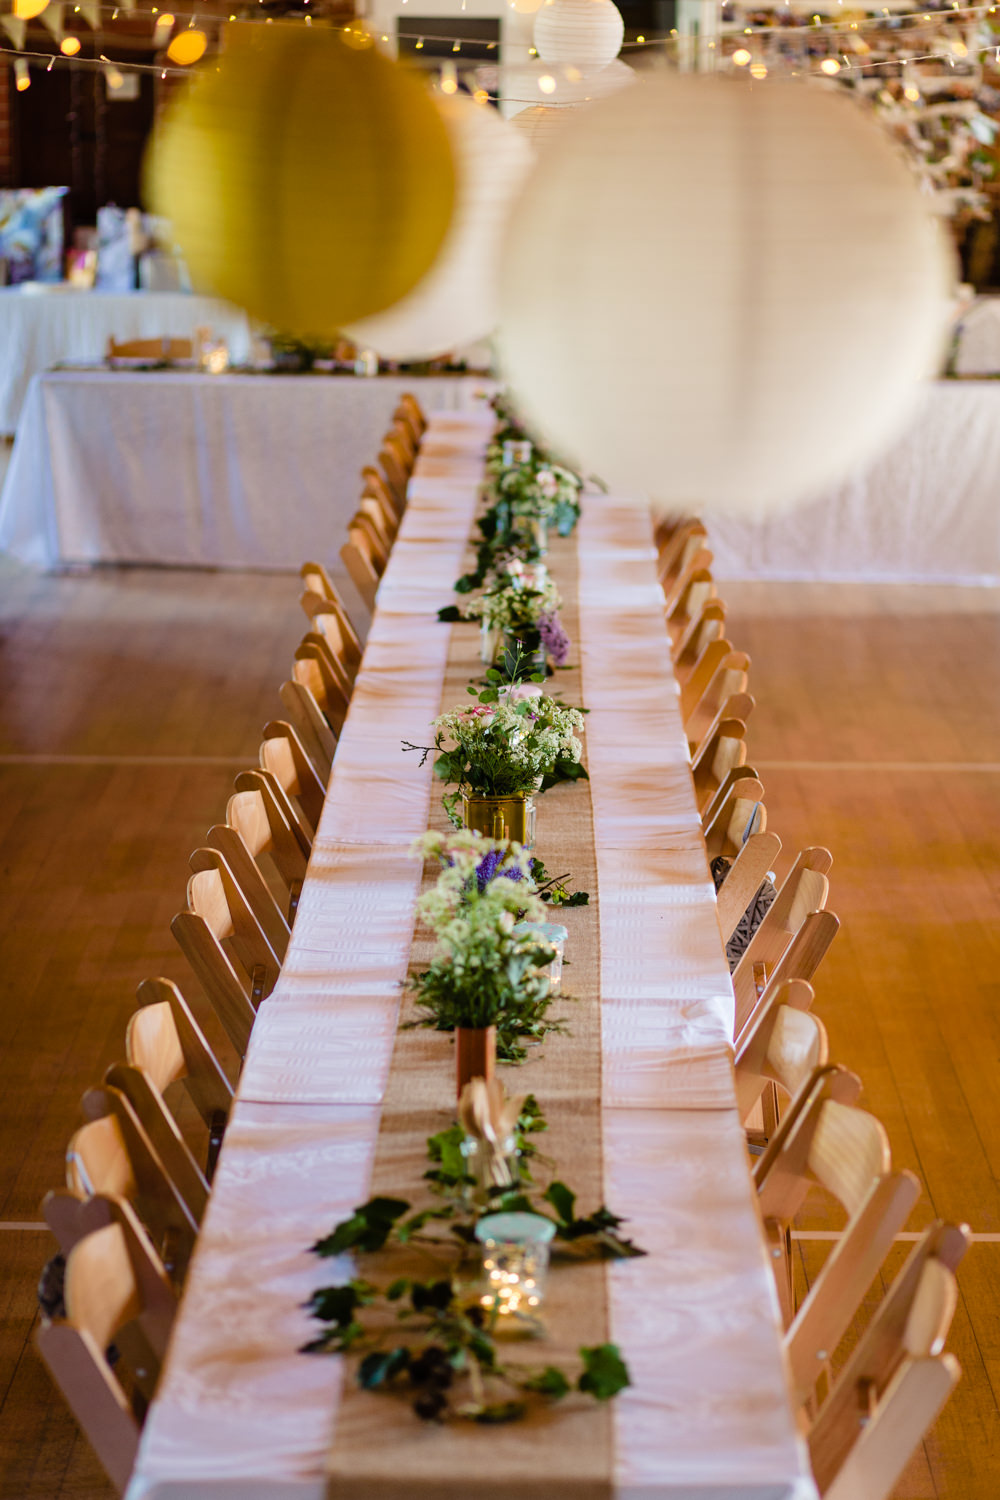 Long Trestle Tables Wooden Chairs Decor Stepney Hill Farm Wedding Emma + Rich Photography